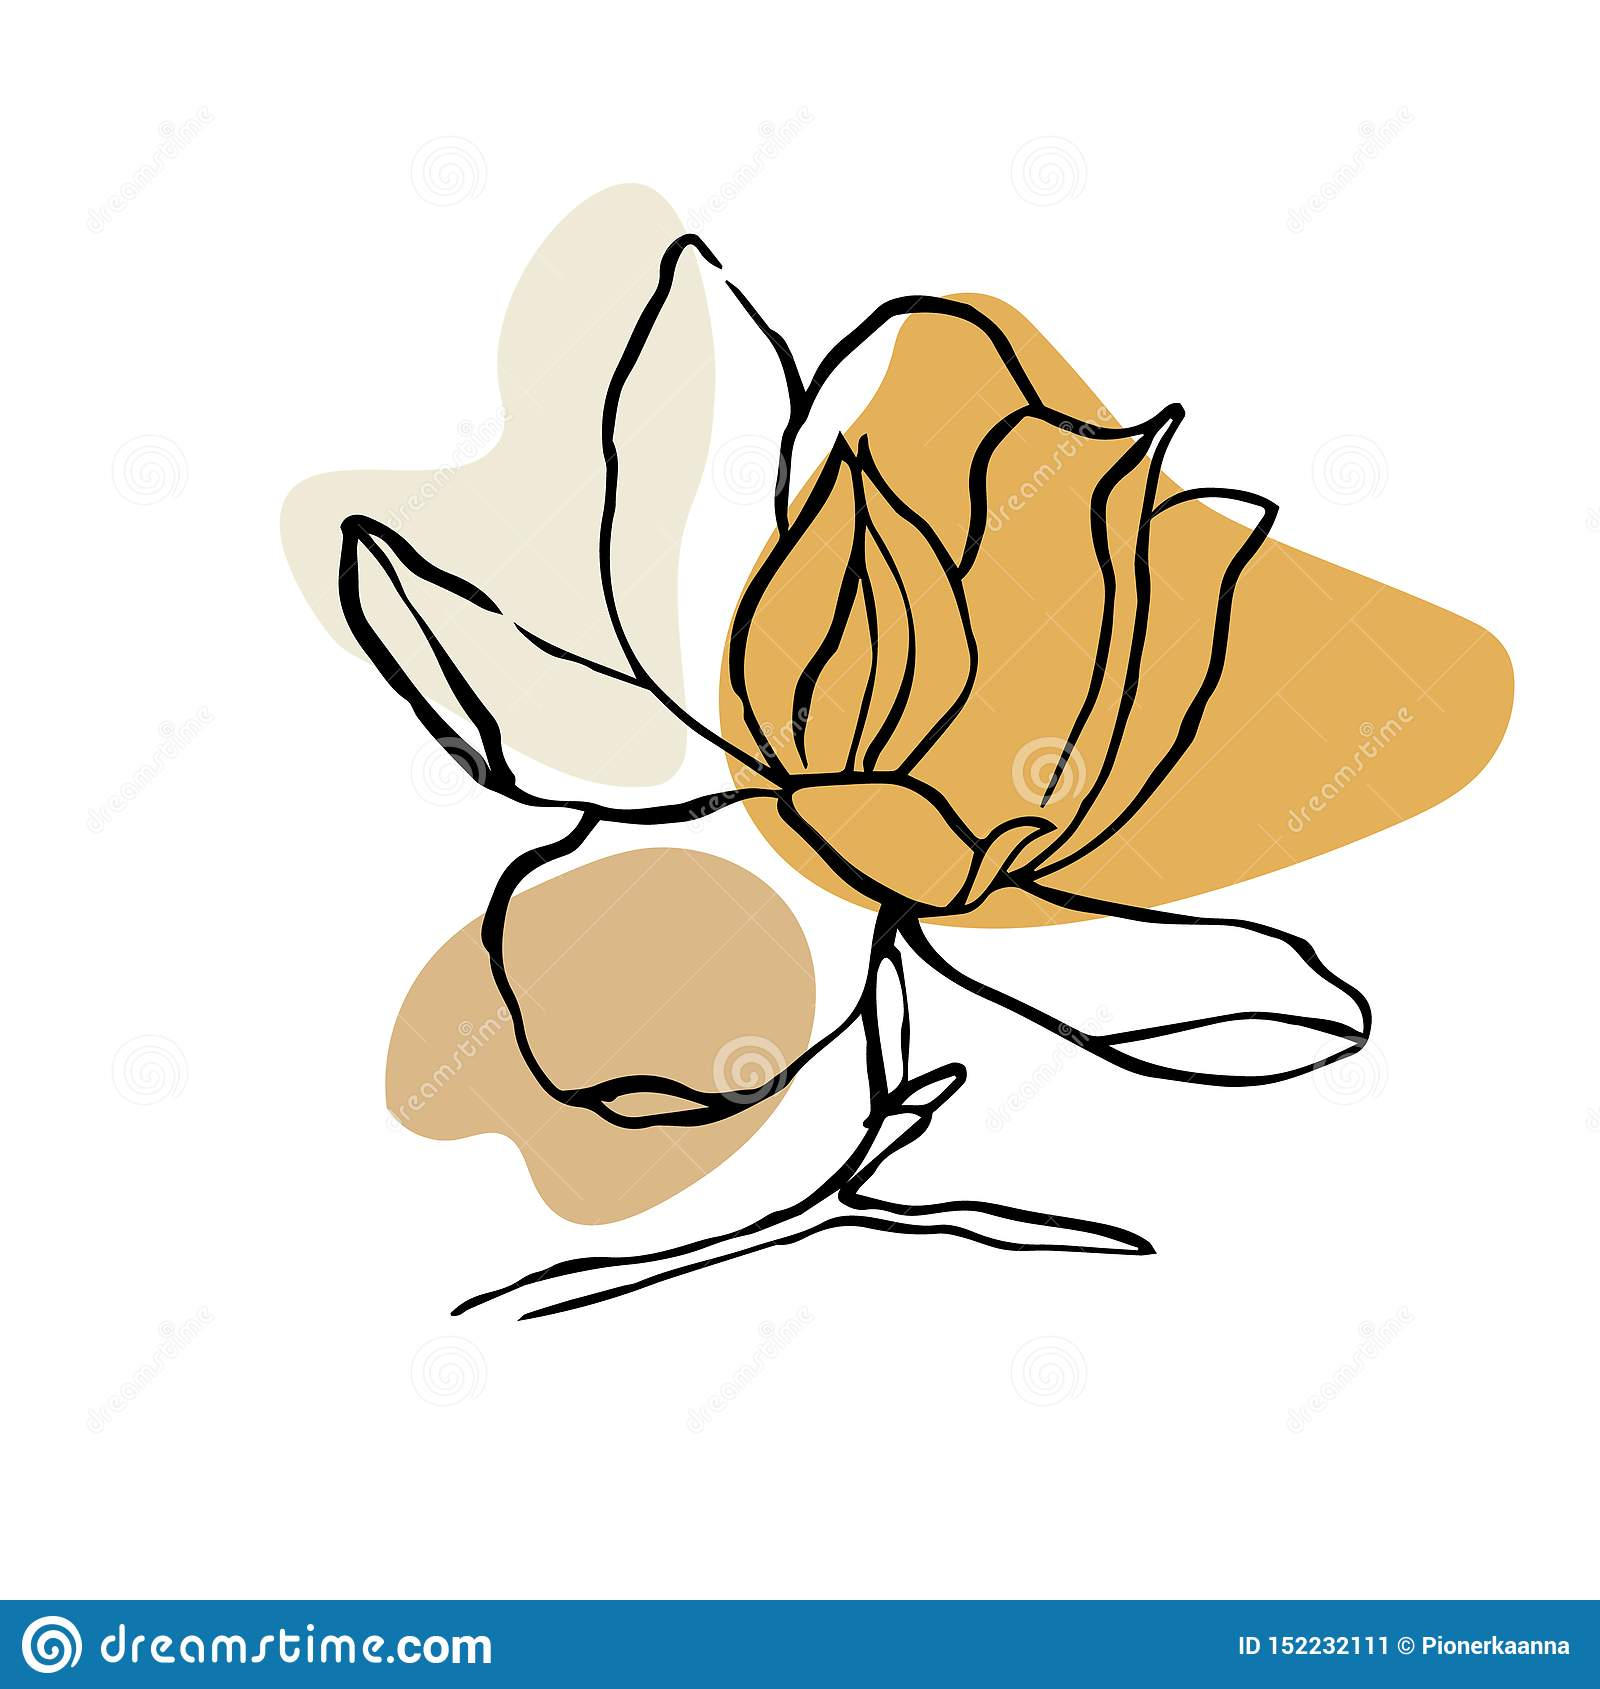 Modern Abstract Shapes Vector Background Or Layout Contour Line Drawing Flower Of Magnolia Modern Minimalism Art Aesthetic Con Stock Vector Illustration Of Bauhaus Contemporary 152232111